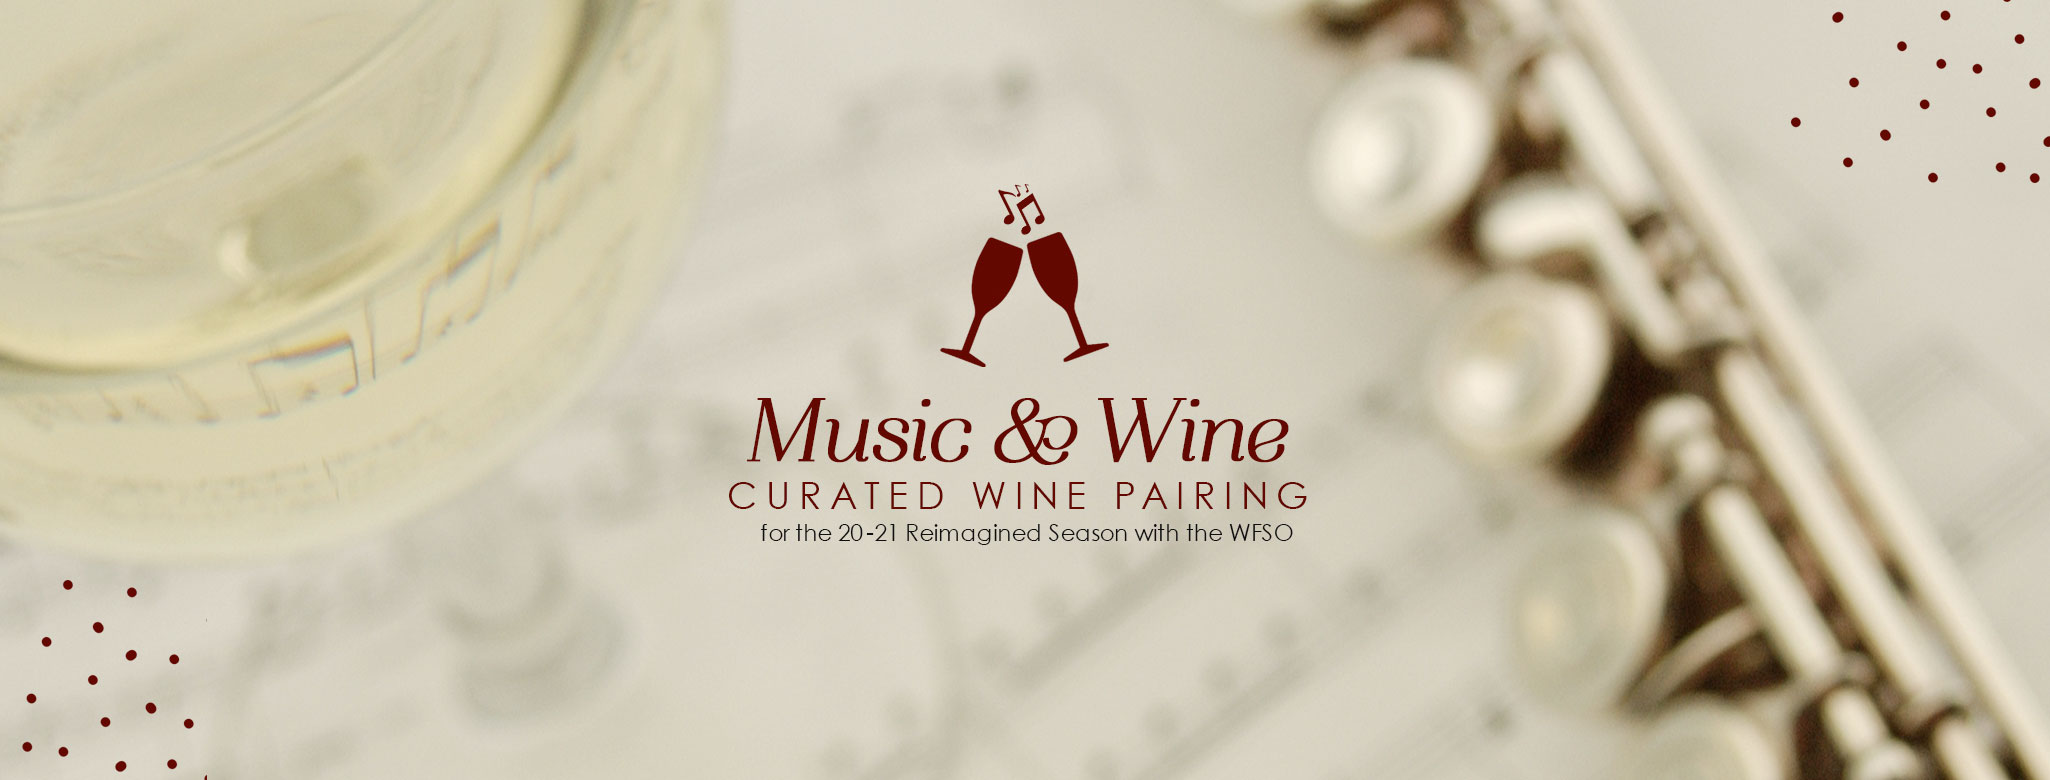 Music & Wine Set for January 30, 2020